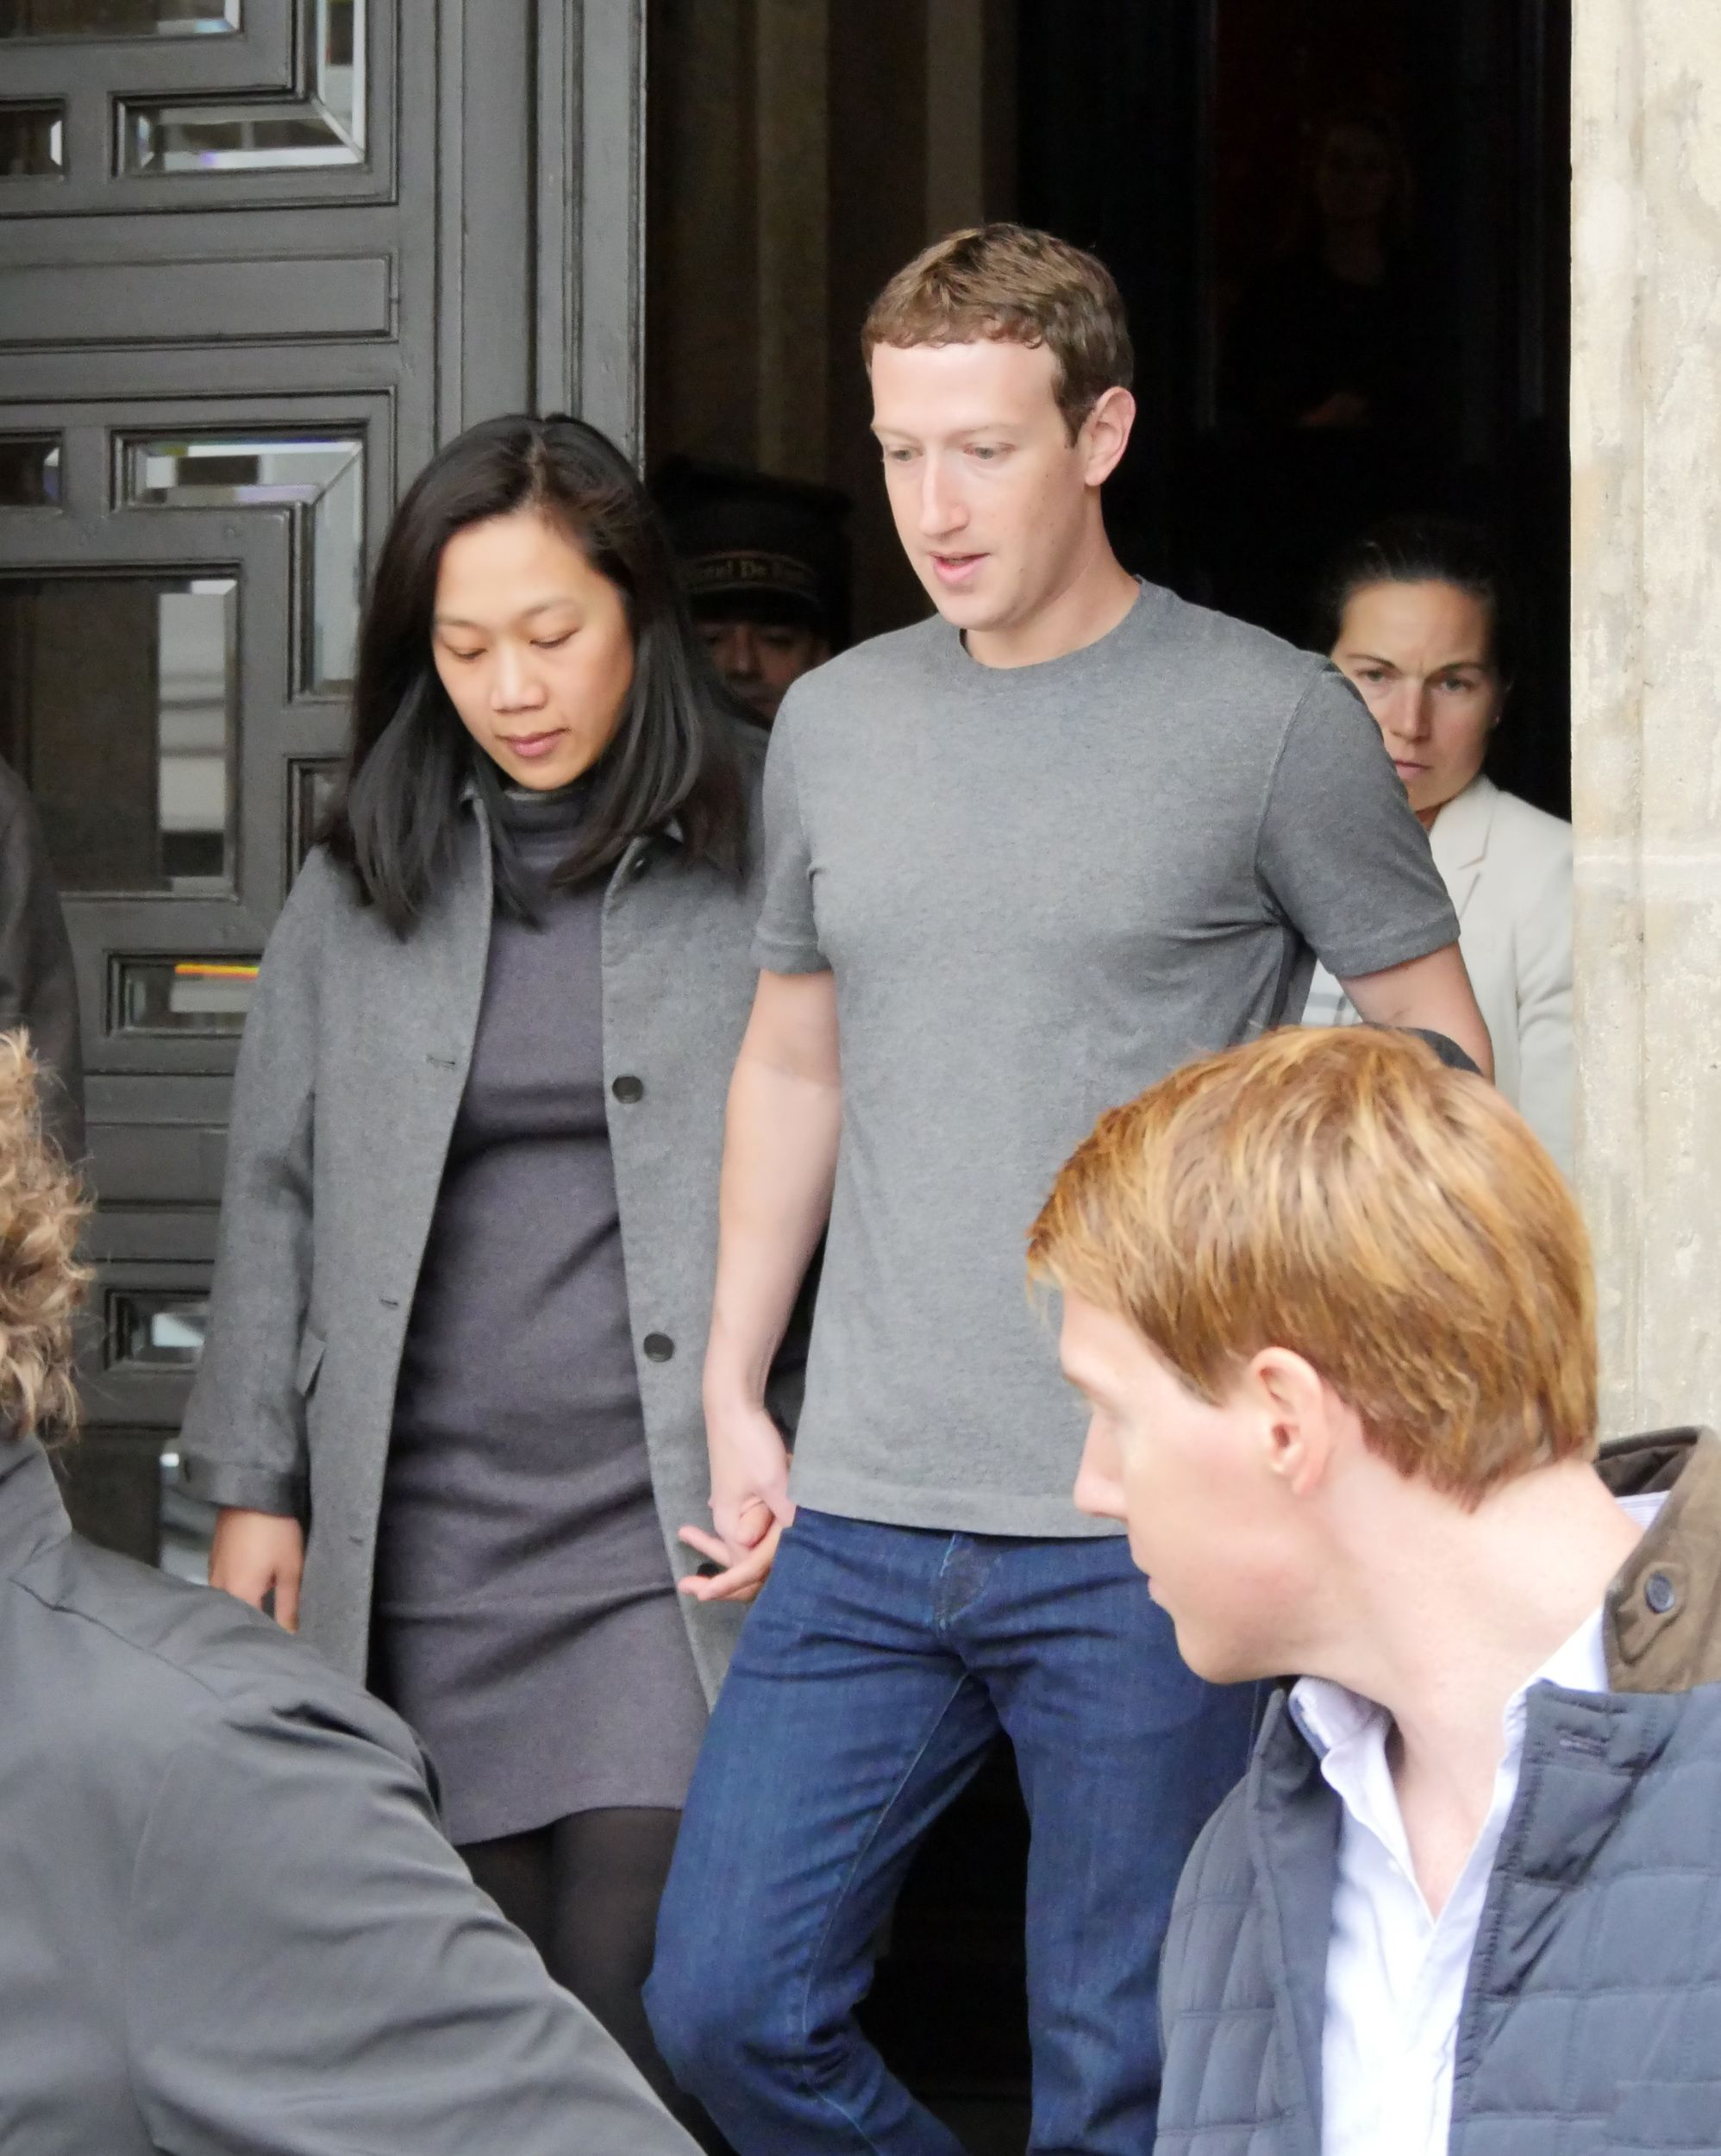 Mark Zuckerberg and his wife Priscilla Chan are expecting